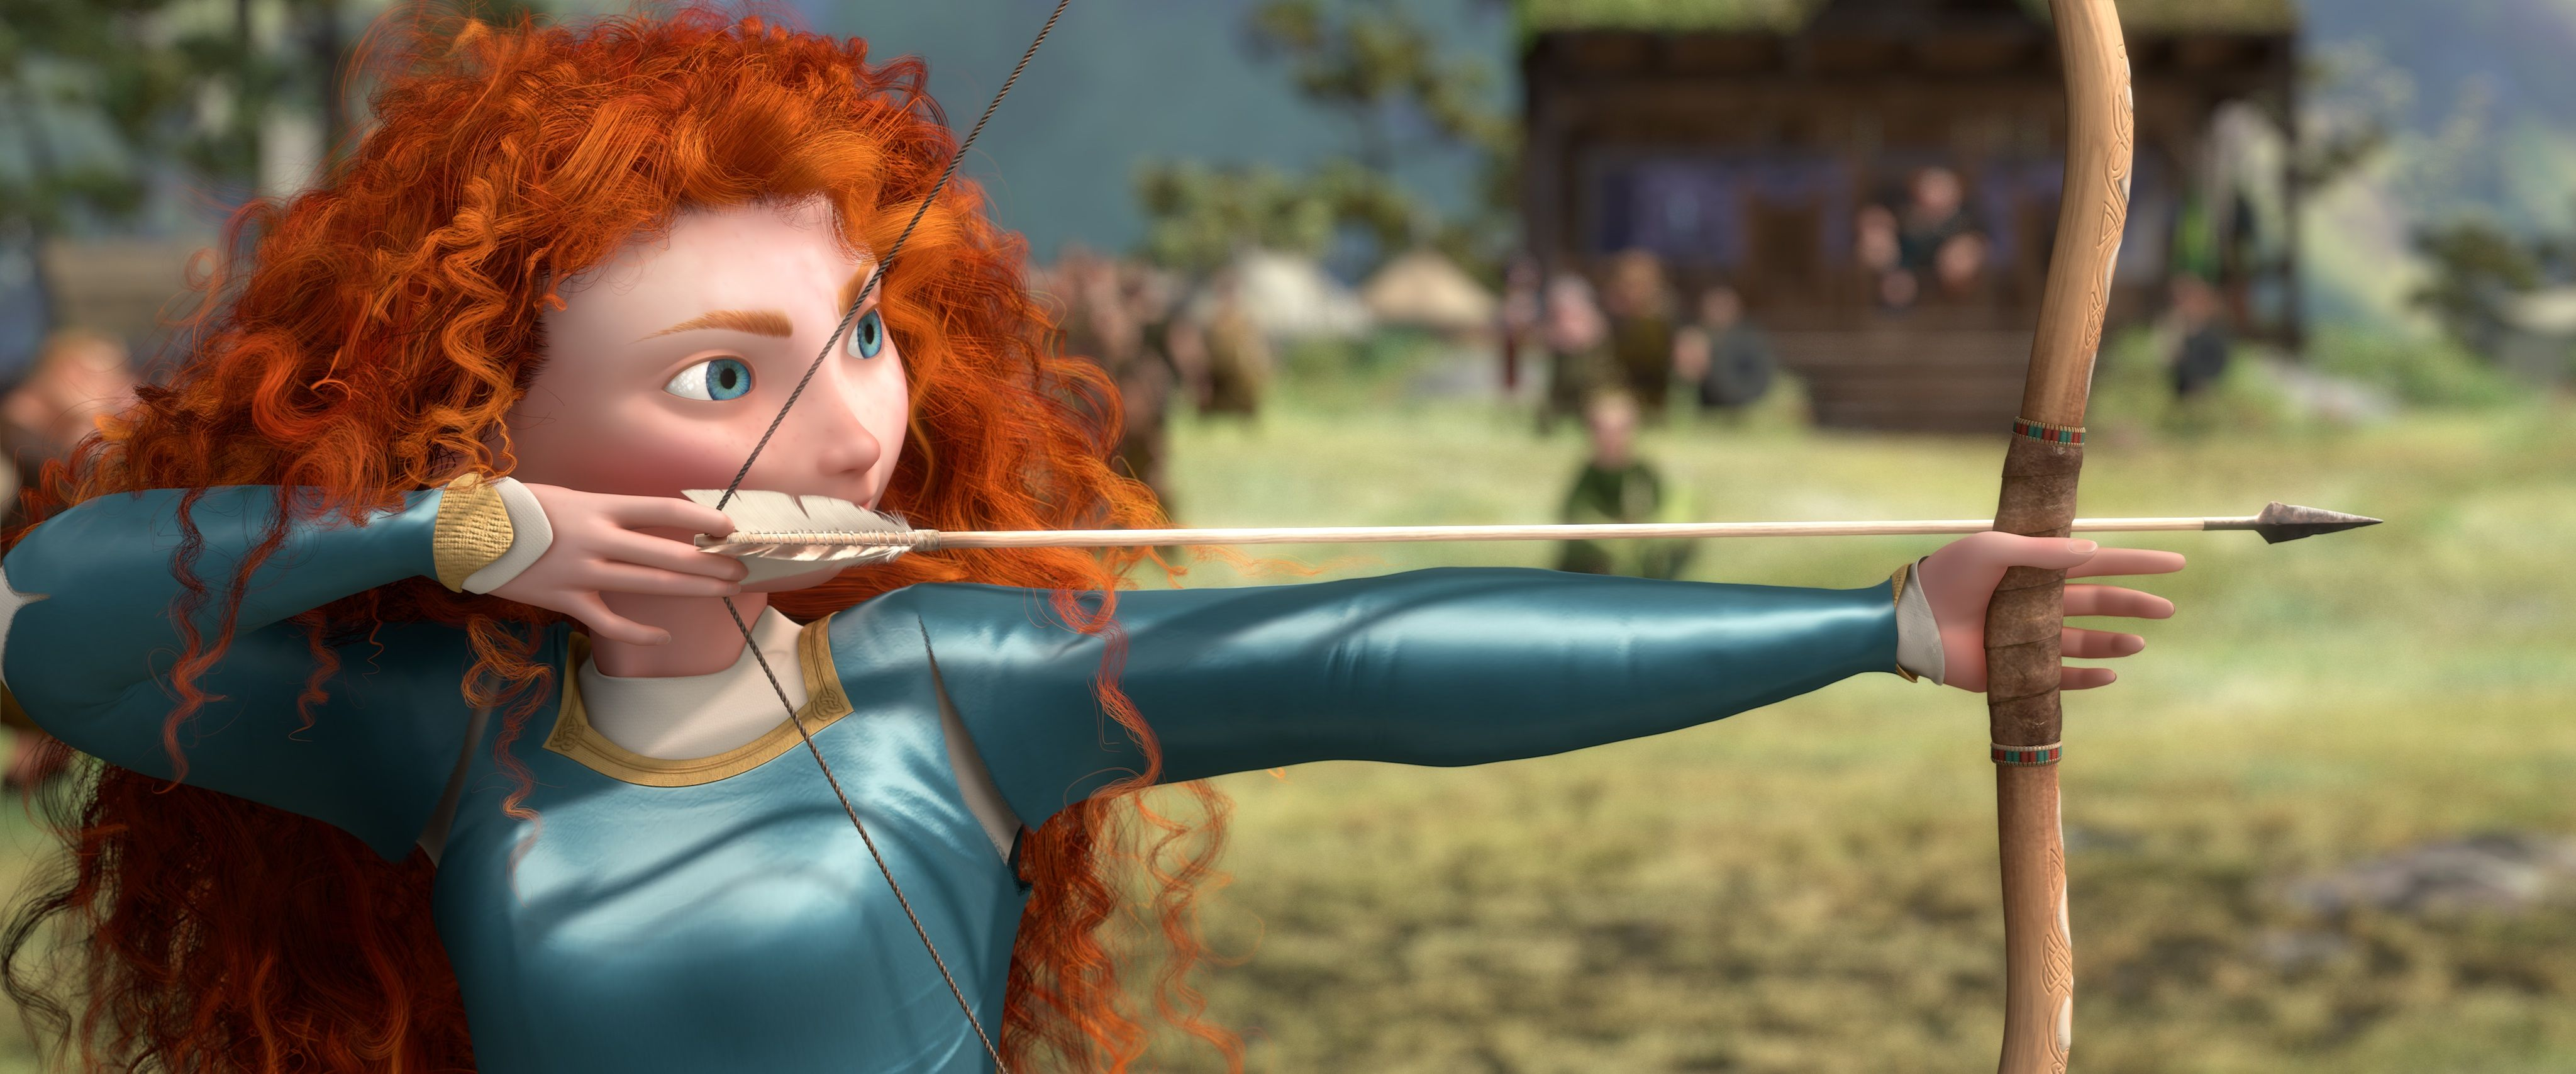 Image result for princess mia, archery